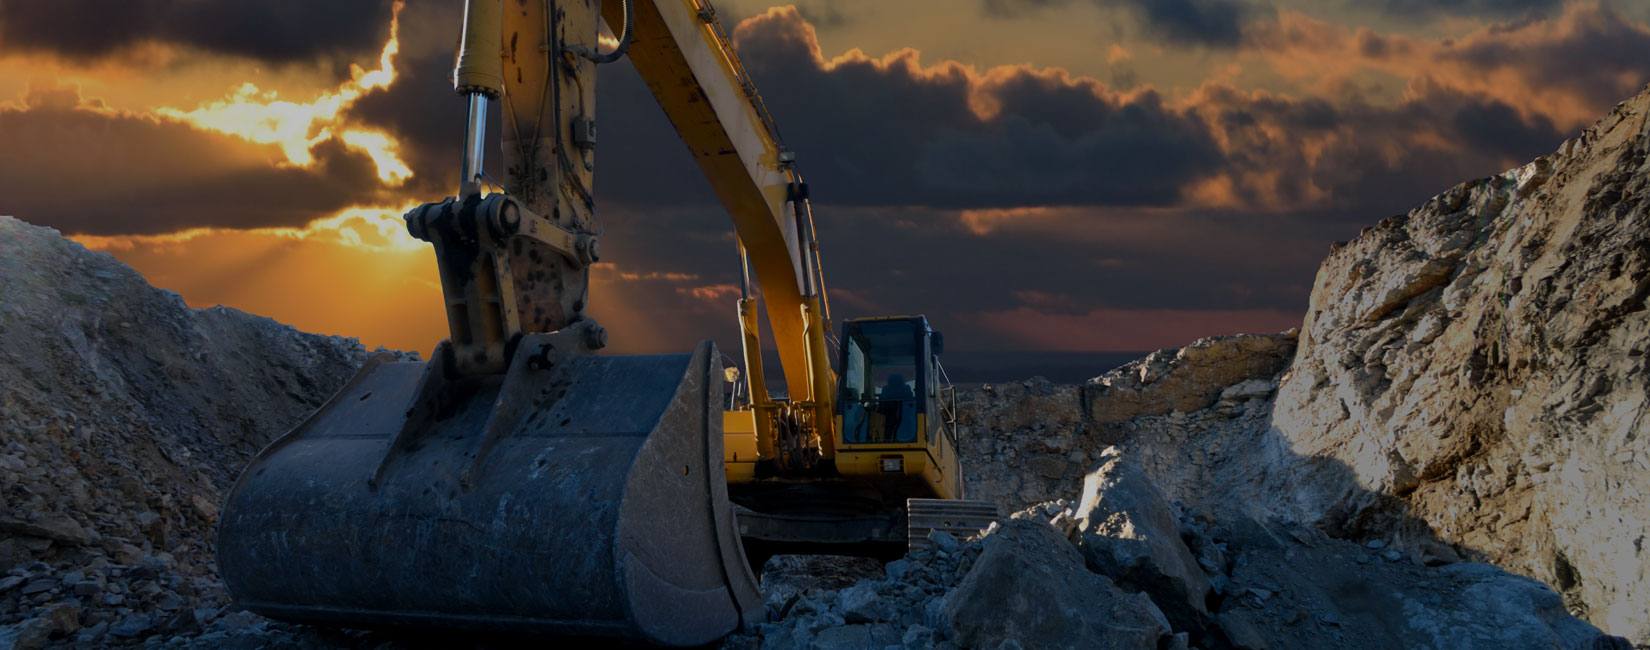 Hogg Brothers excavator-working-sunset